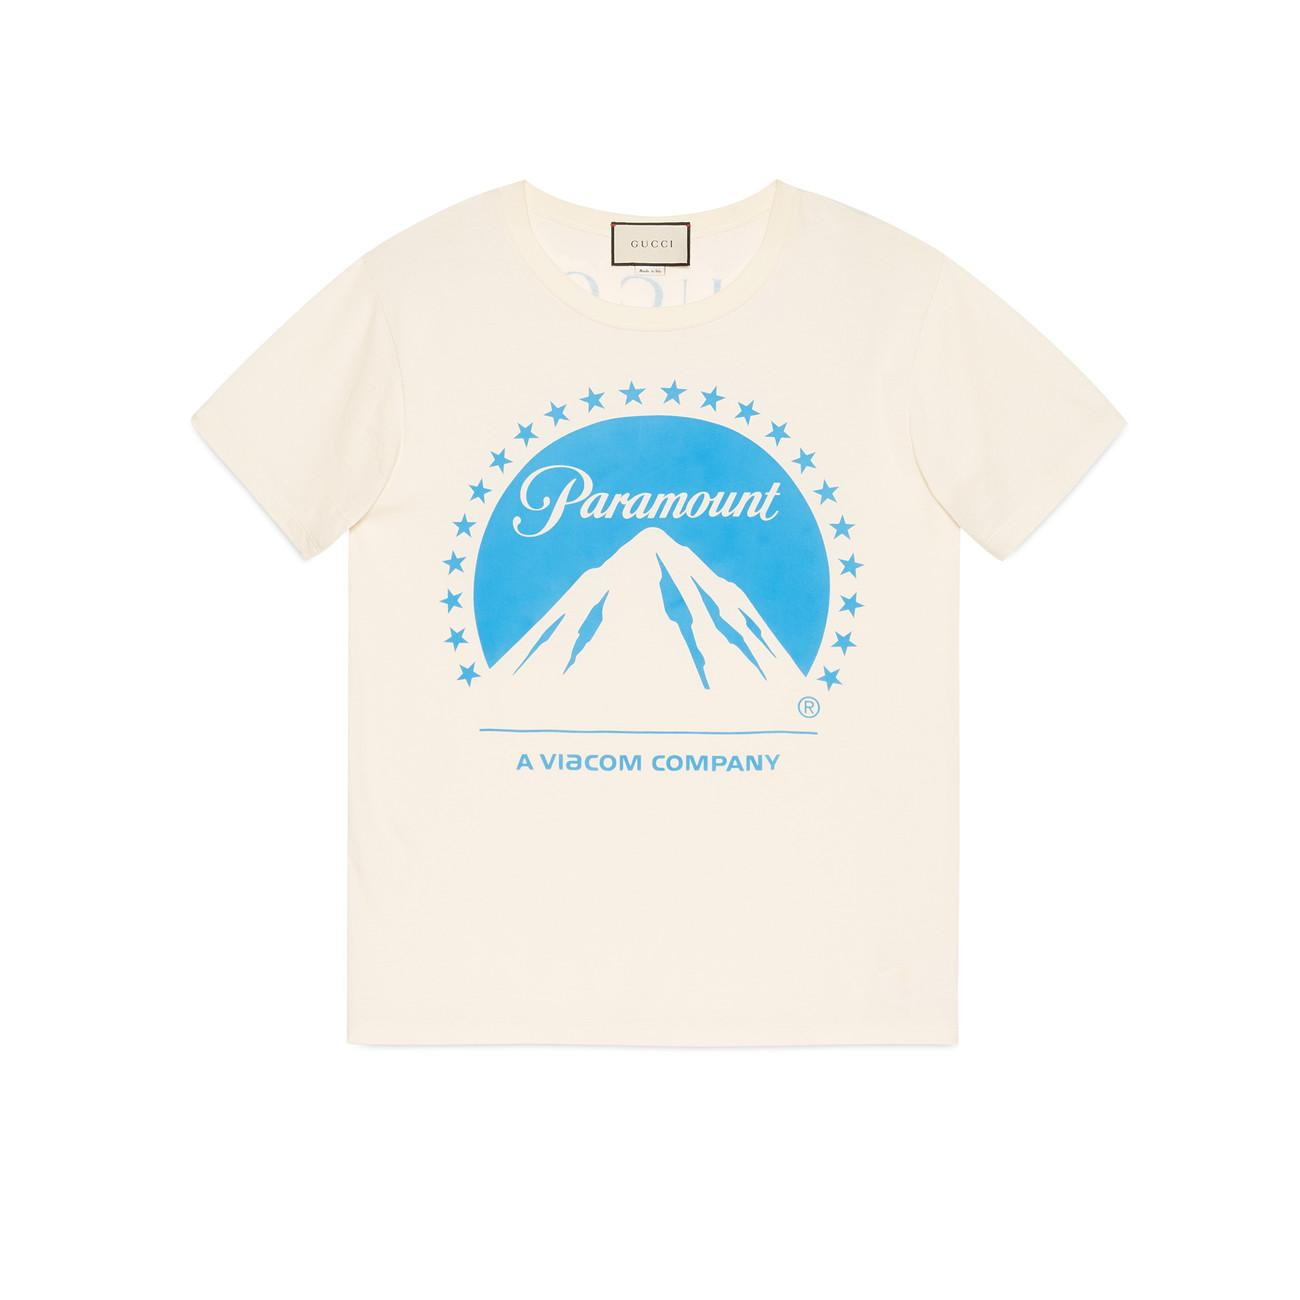 75ccf7c9bd1a Lyst - Gucci Oversize T-shirt With Paramount Logo in Blue